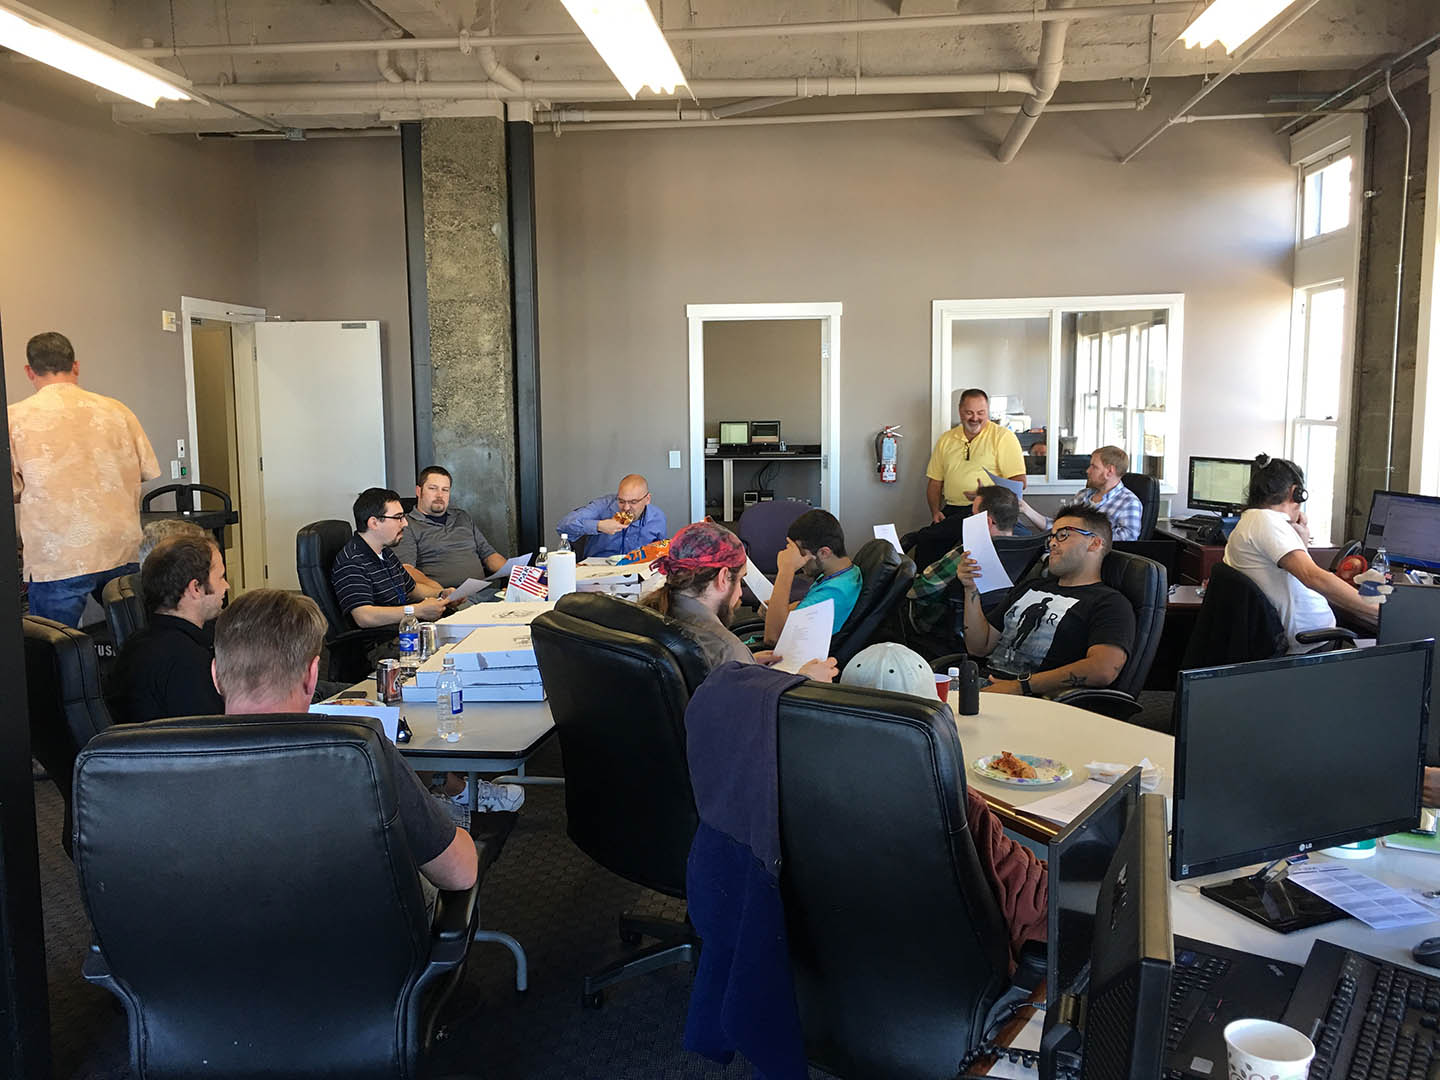 Monthly NOC meeting from our historic Perkins Building in downtown Tacoma